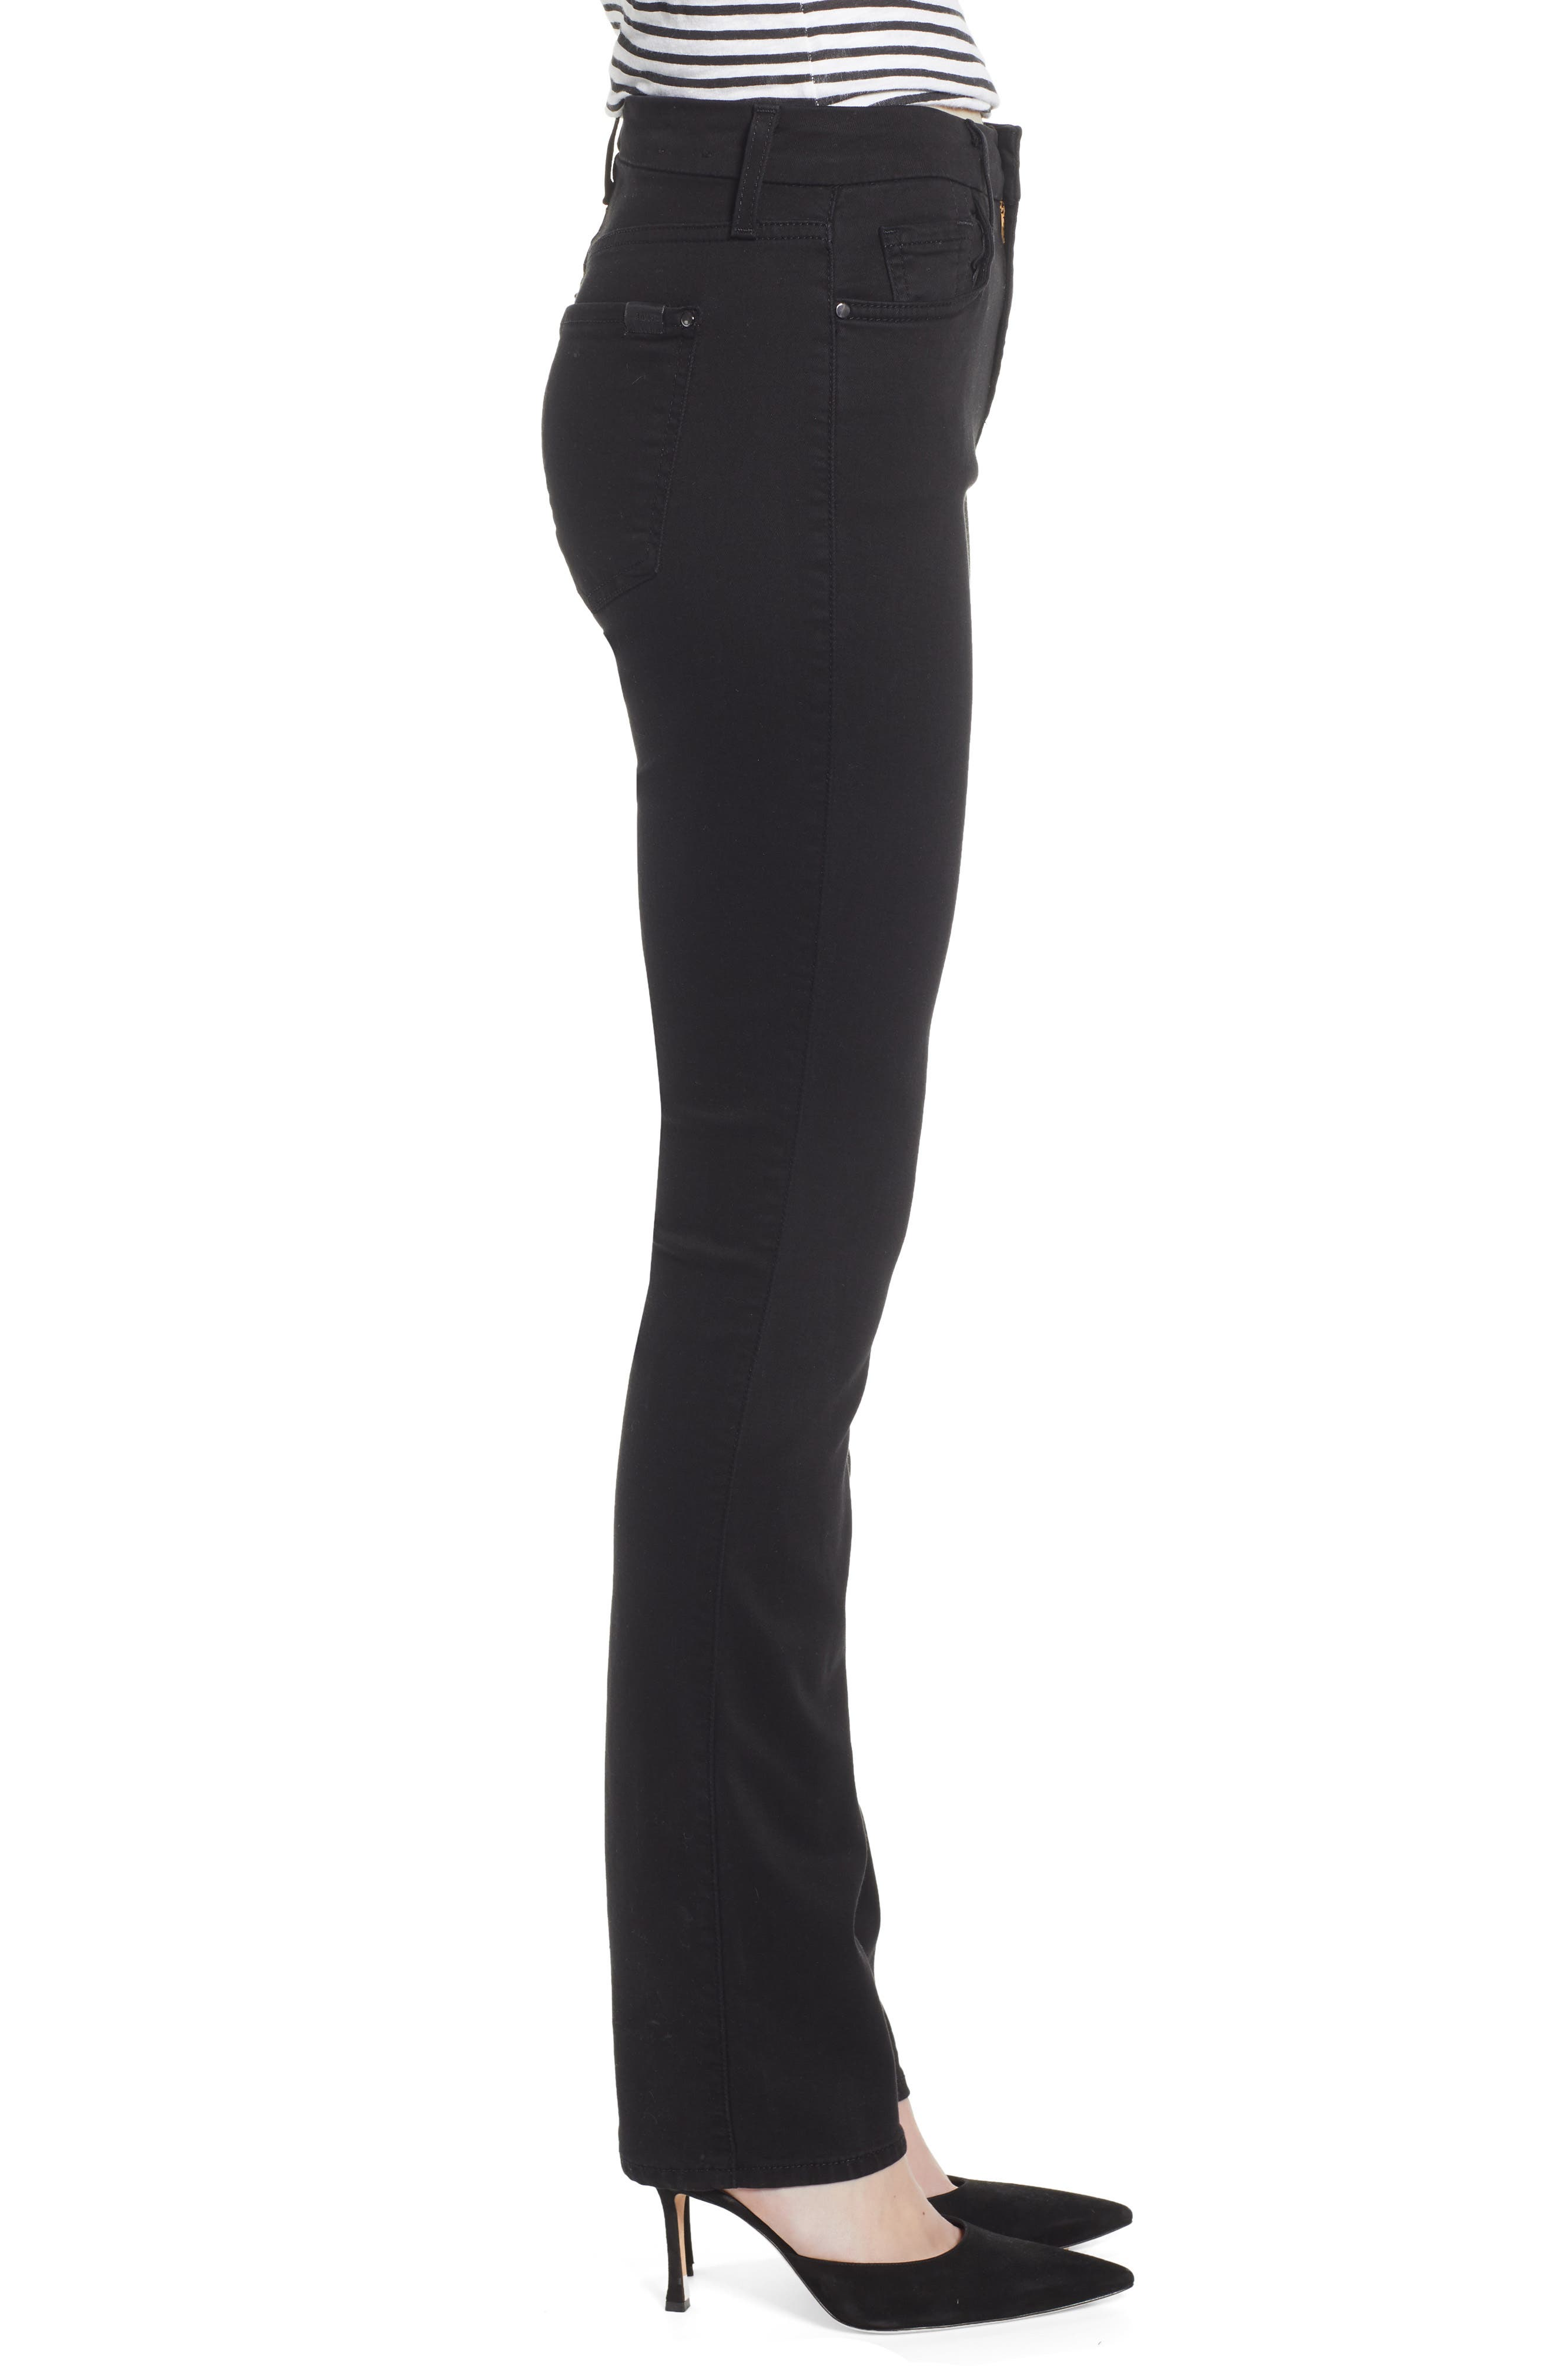 JEN7 BY 7 FOR ALL MANKIND, Stretch Slim Straight Leg Jeans, Alternate thumbnail 3, color, CLASSIC BLACK NOIR